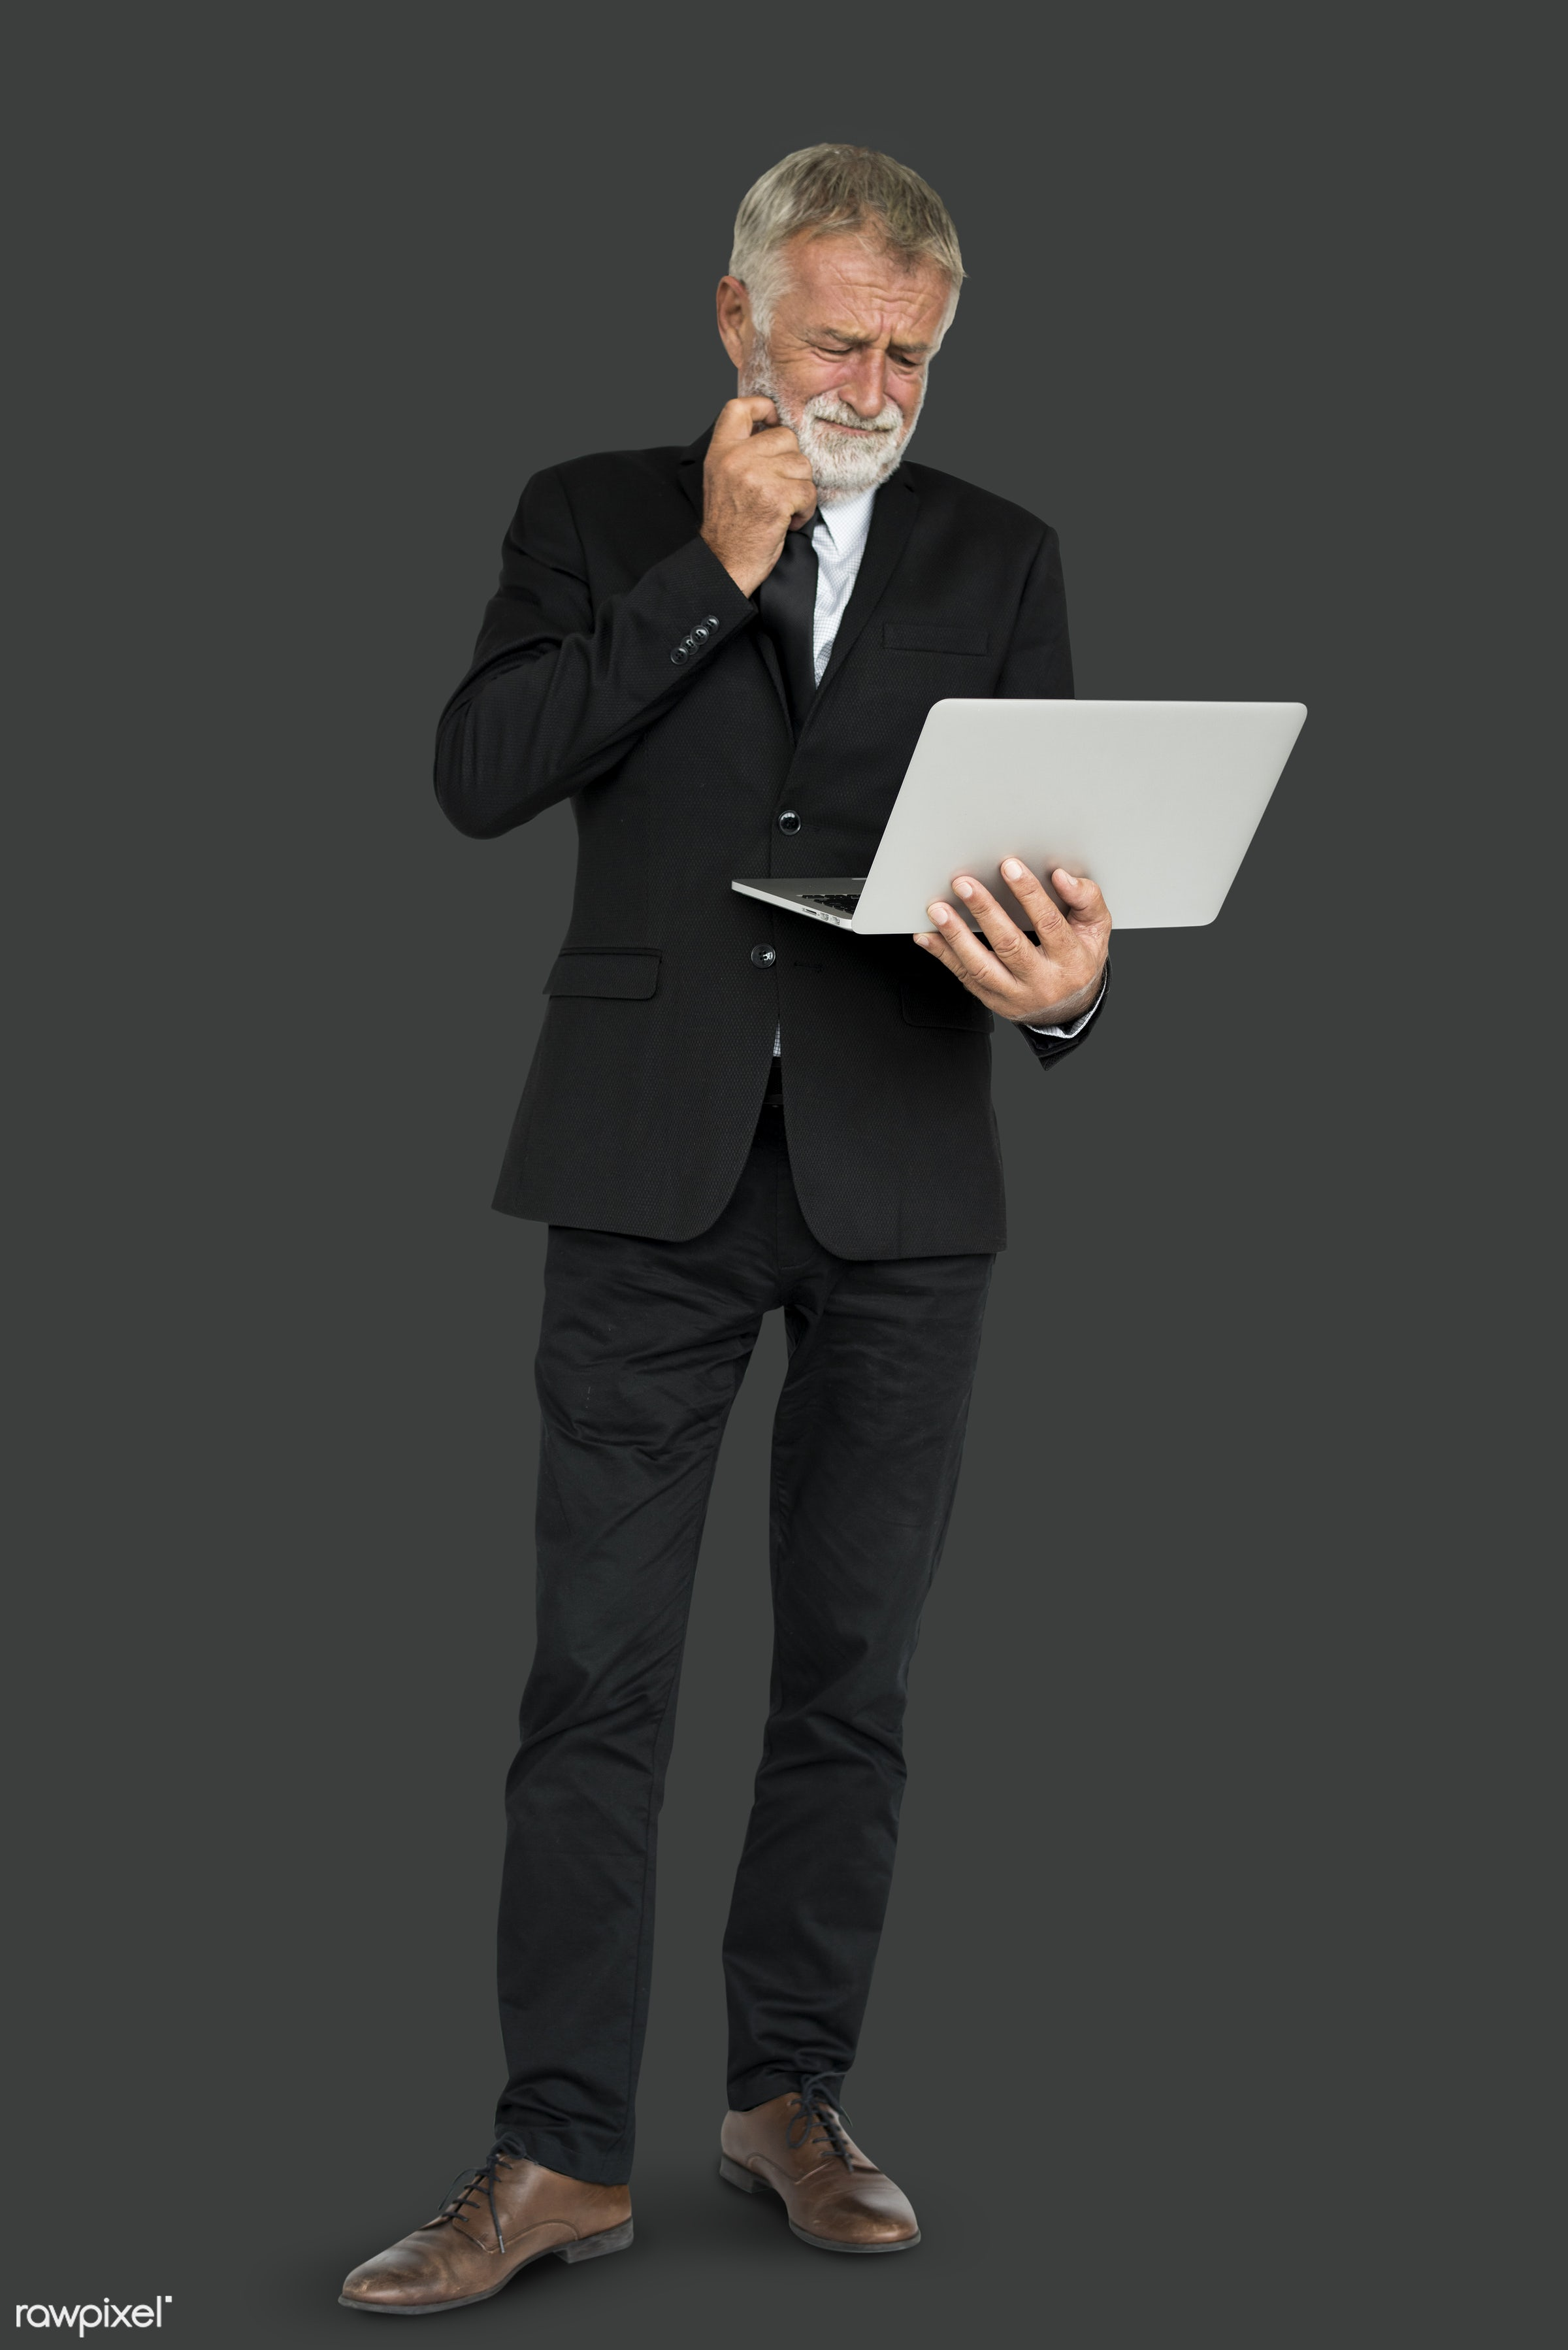 business man, hold, holding, laptop, man, stand, standing, suit, think, thinking